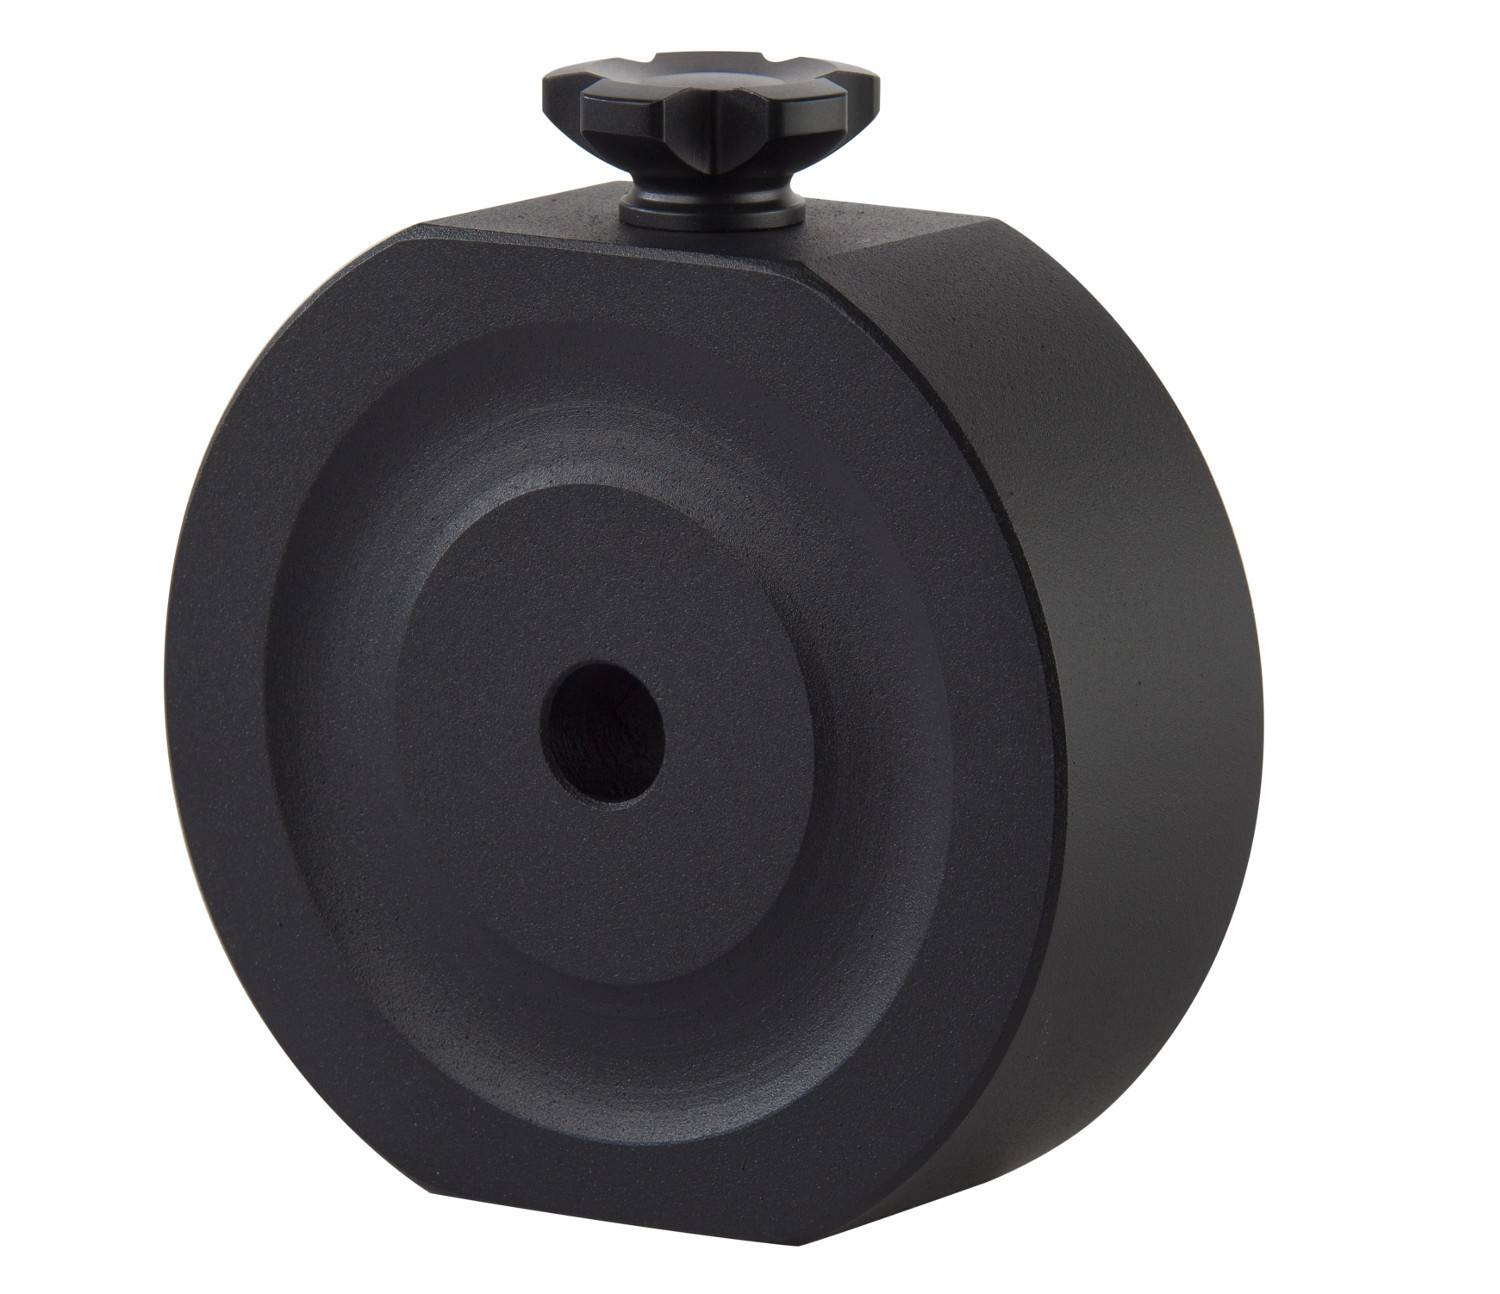 Celestron Counterweight 17lbs for 19mm Shaft